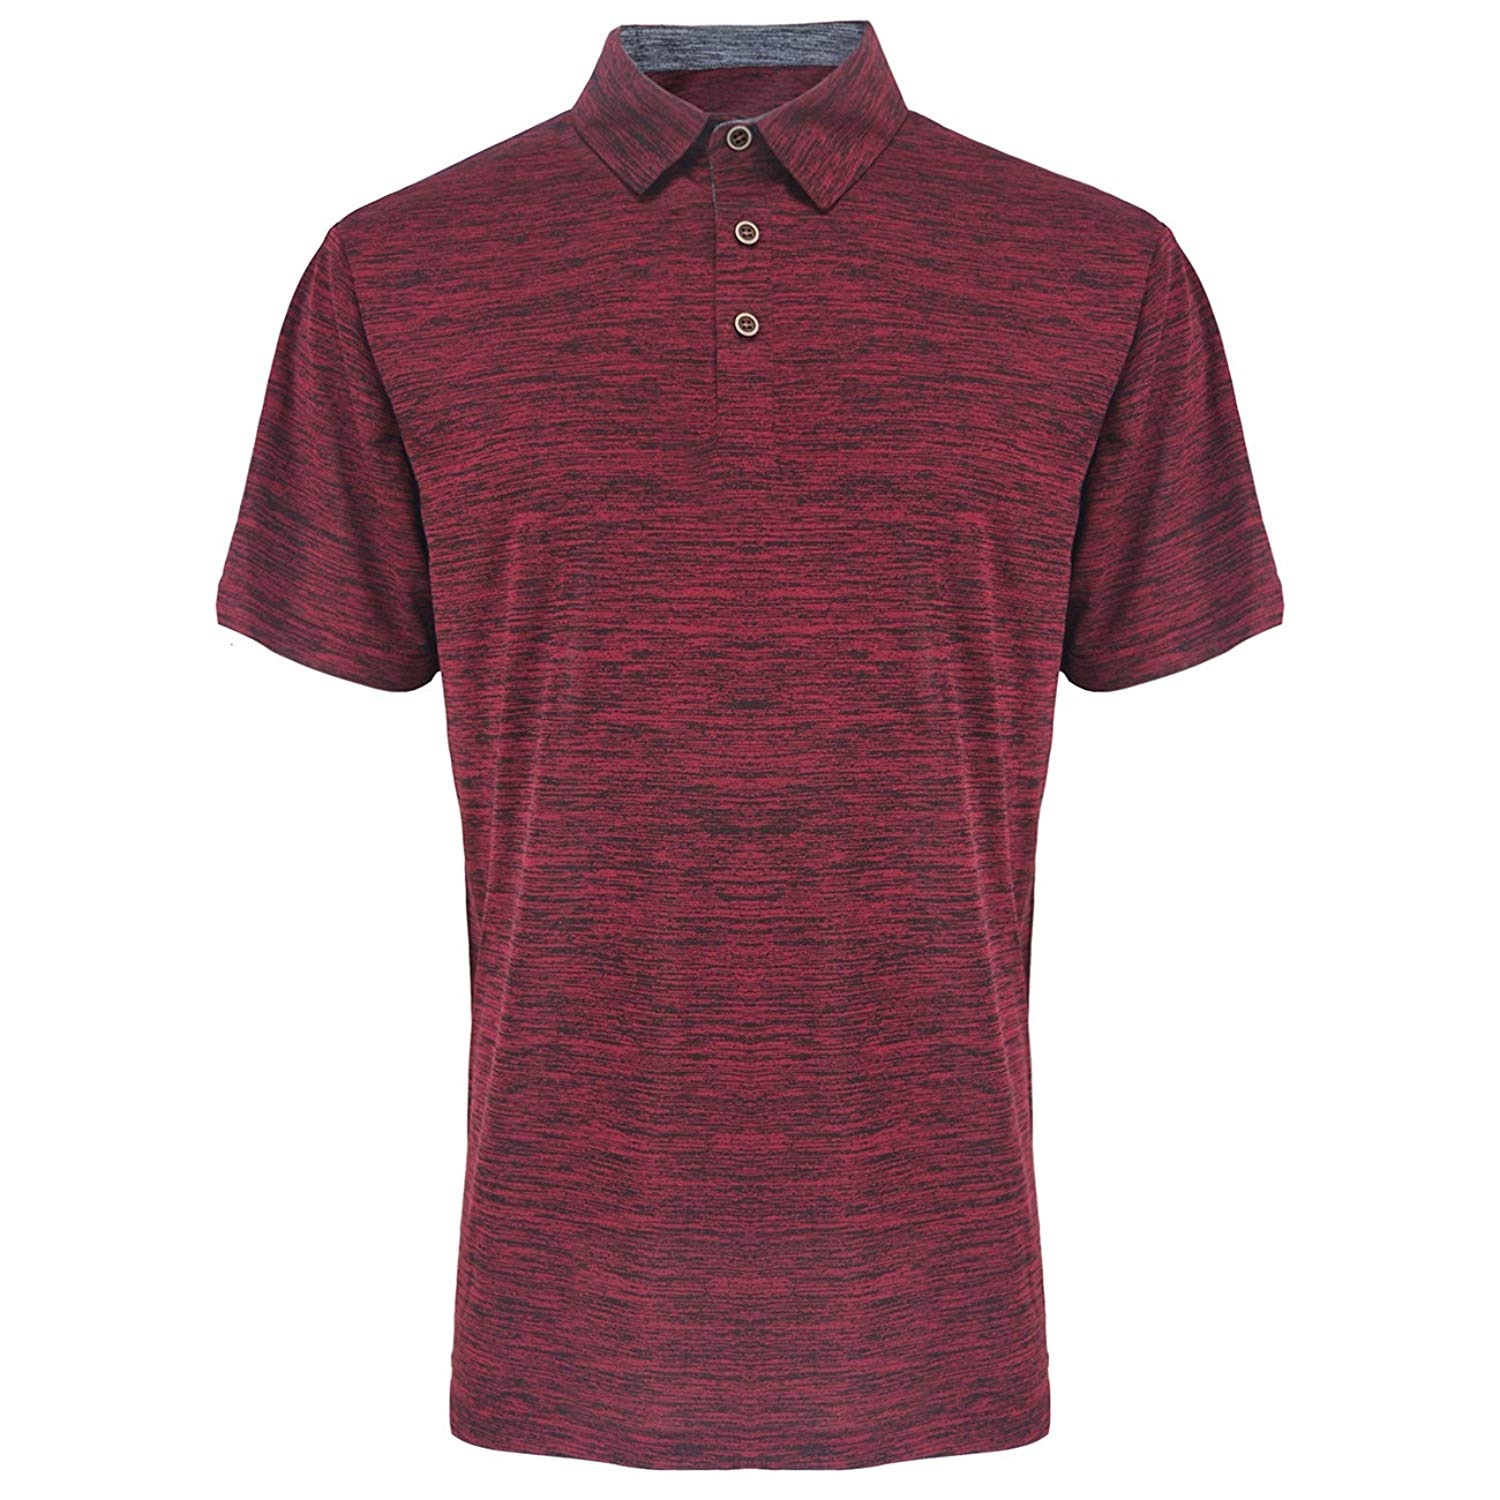 Cheap Athletic Polo Shirts Men Find Athletic Polo Shirts Men Deals